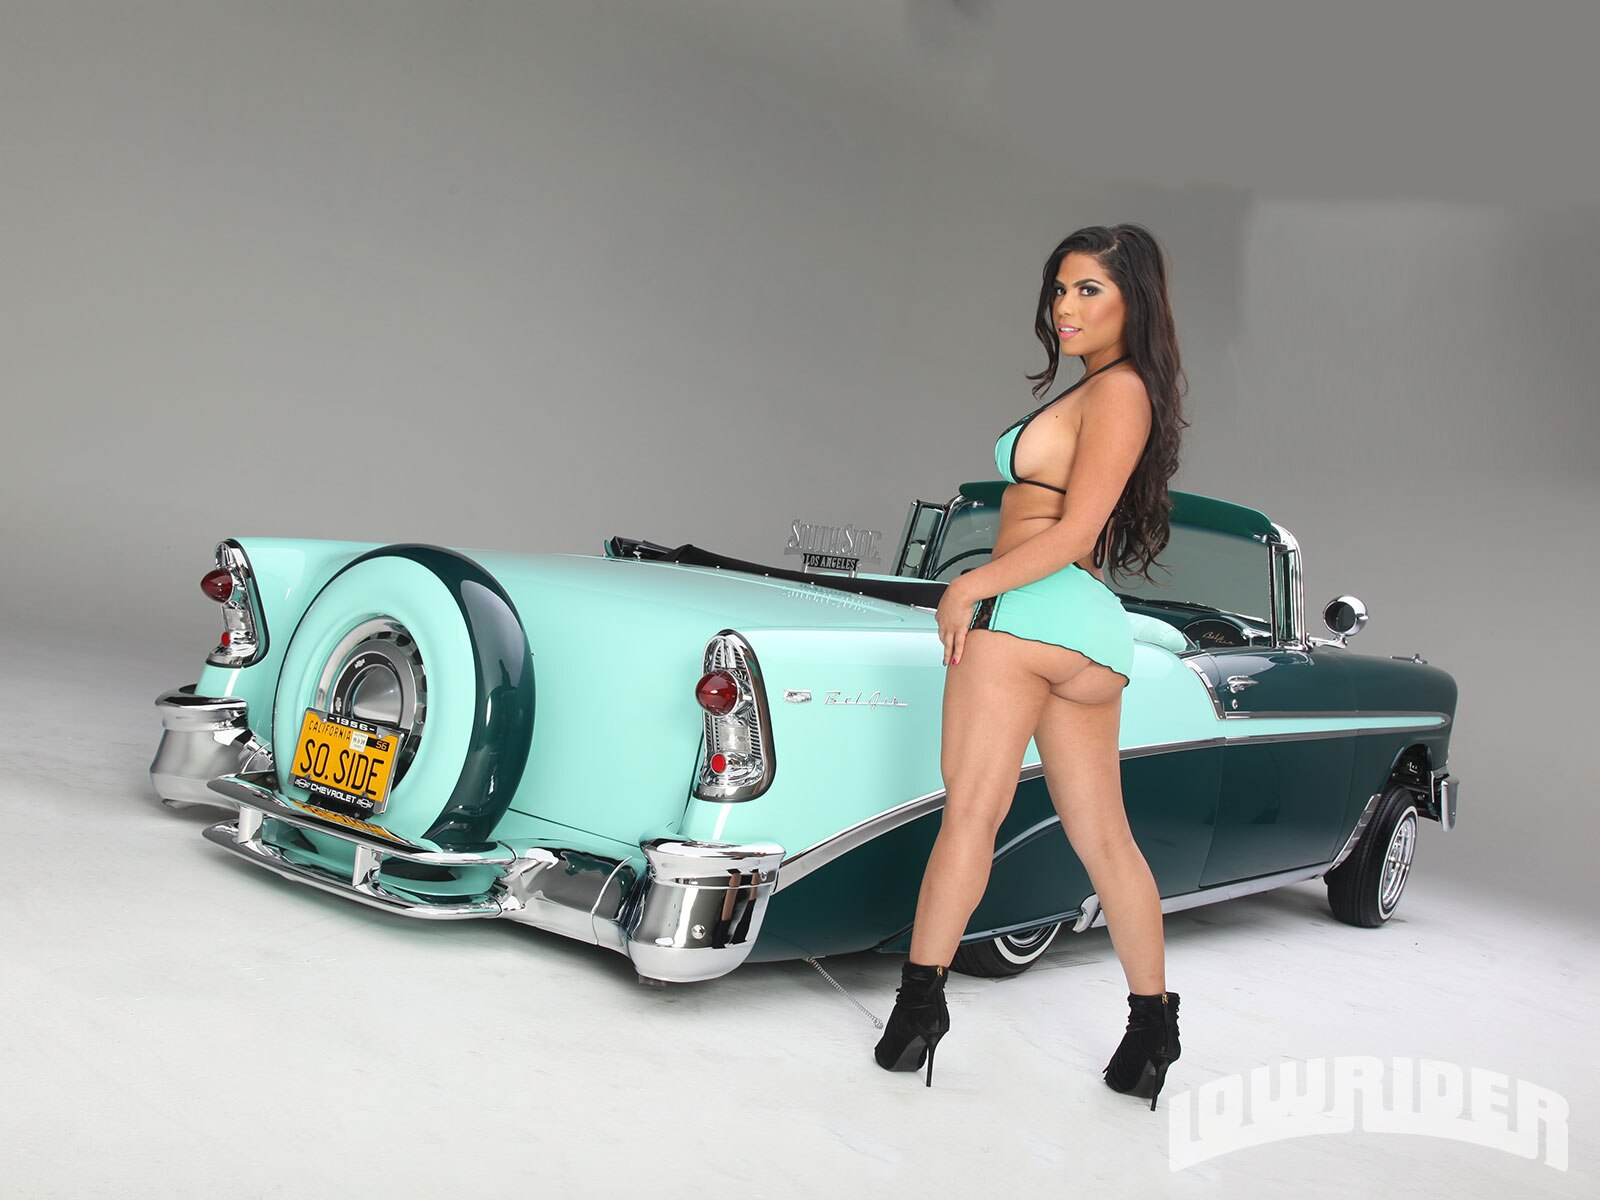 Nude lowrider naked dirty porn star